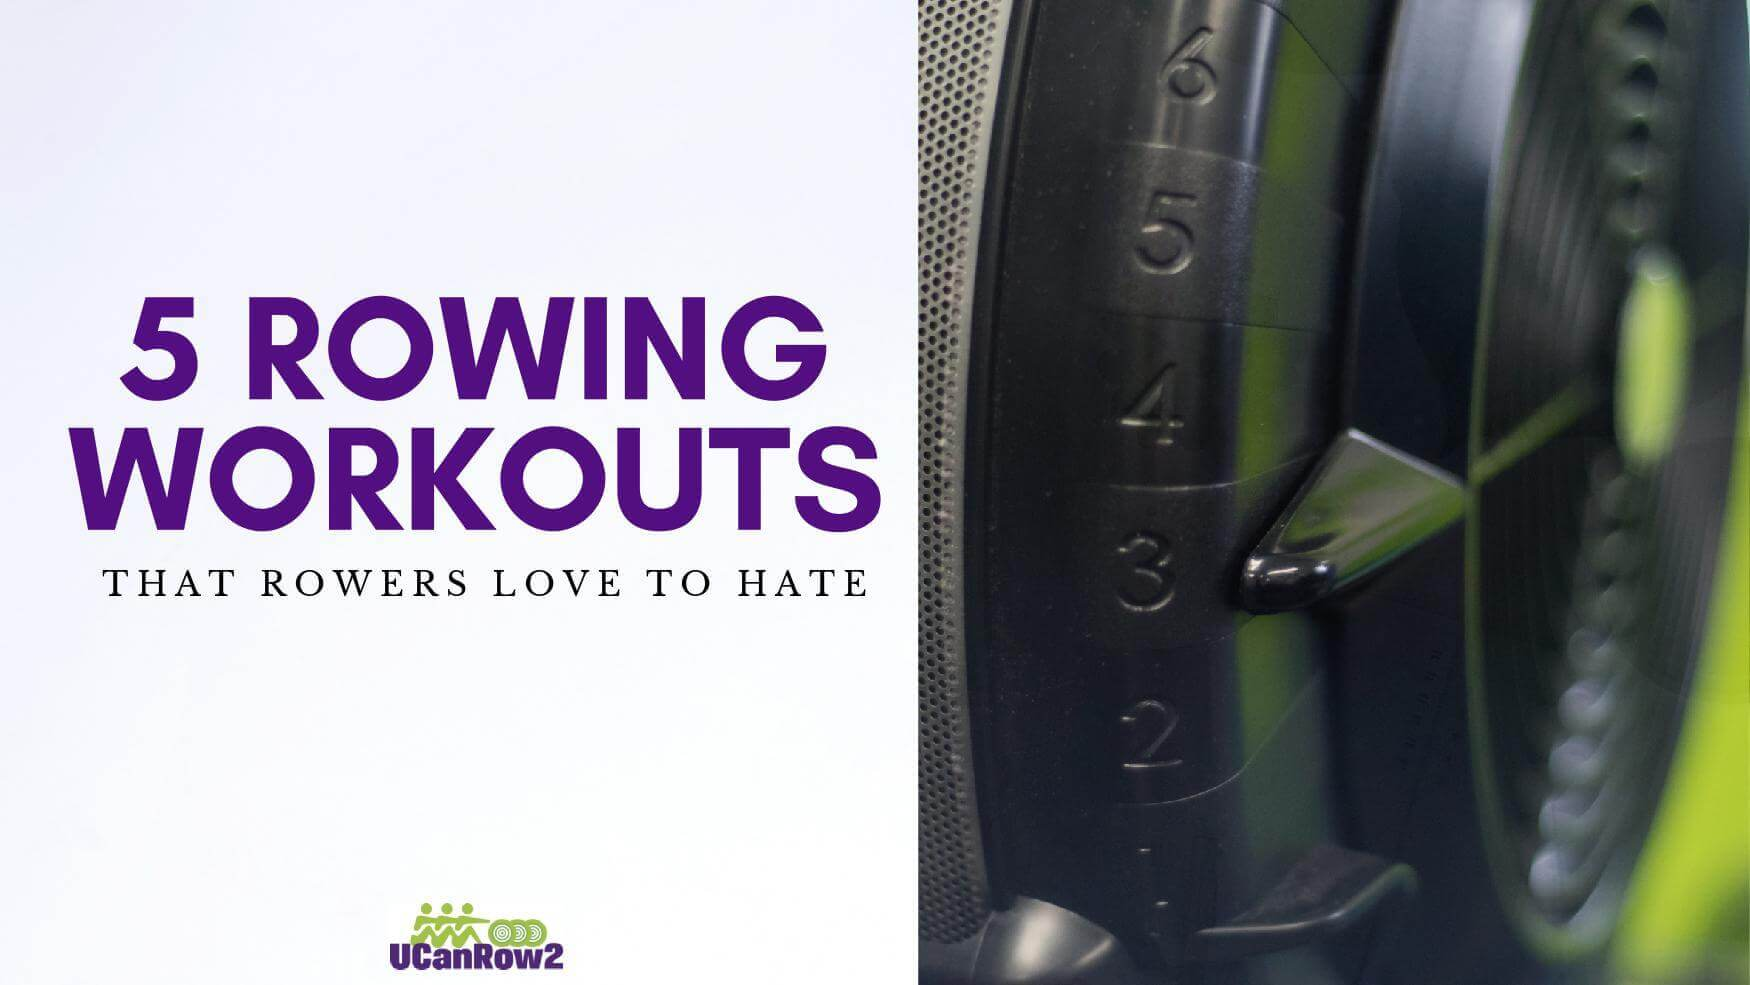 5 row machine workouts that rowers love to hate - use these to build your rowing machine endurance